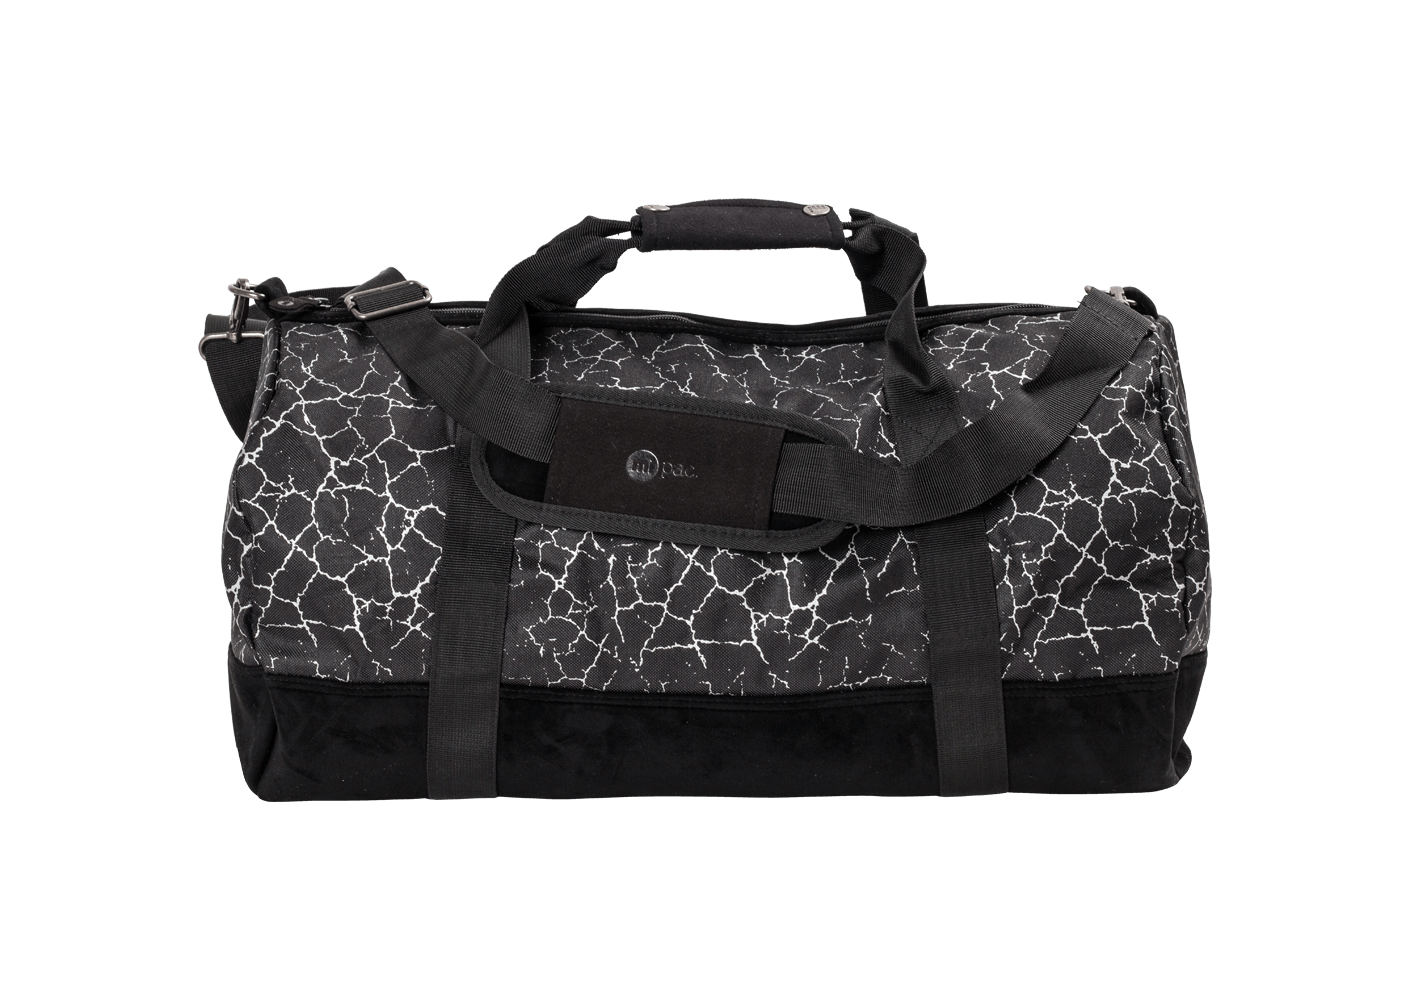 mi pac sac voyage duffel cracked noir black friday chausport. Black Bedroom Furniture Sets. Home Design Ideas